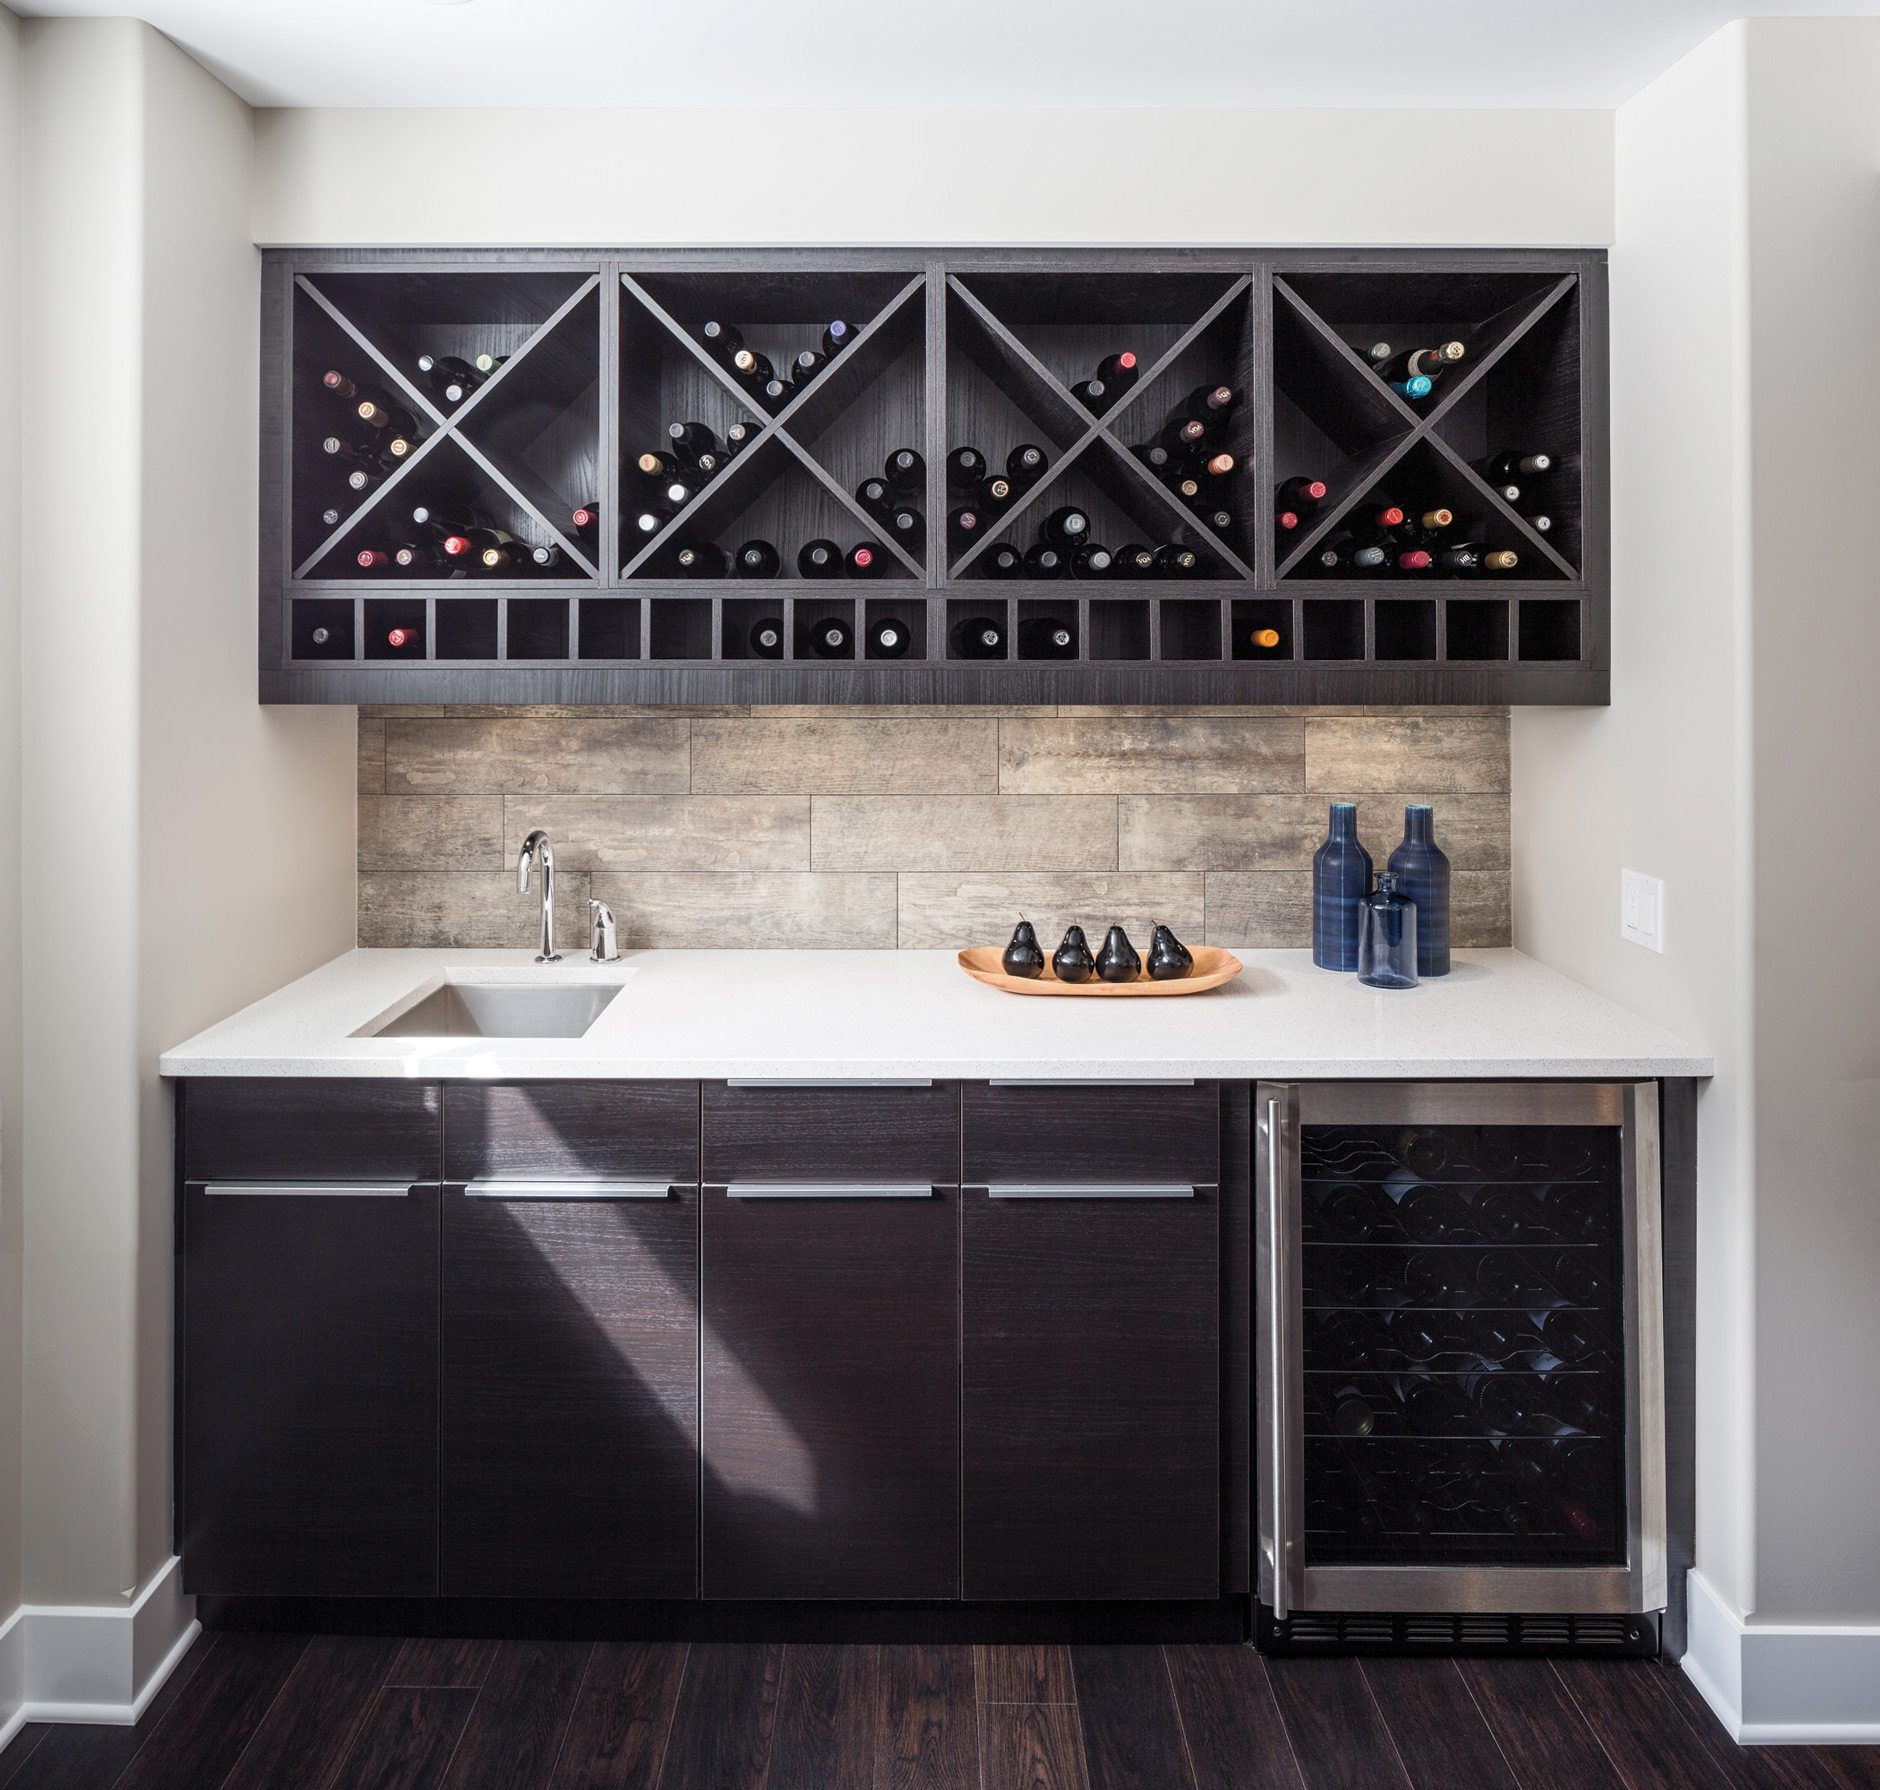 The wine fridge holds up to 30 bottles. The bar area and the decorative wine wall offer space for an additional 150 bottles. Lecuyer notes that his clients are wine appreciators rather than serious collectors so were not concerned about storing their collection in a strict climate-controlled environment. Photo: Justin Van Leeuwen